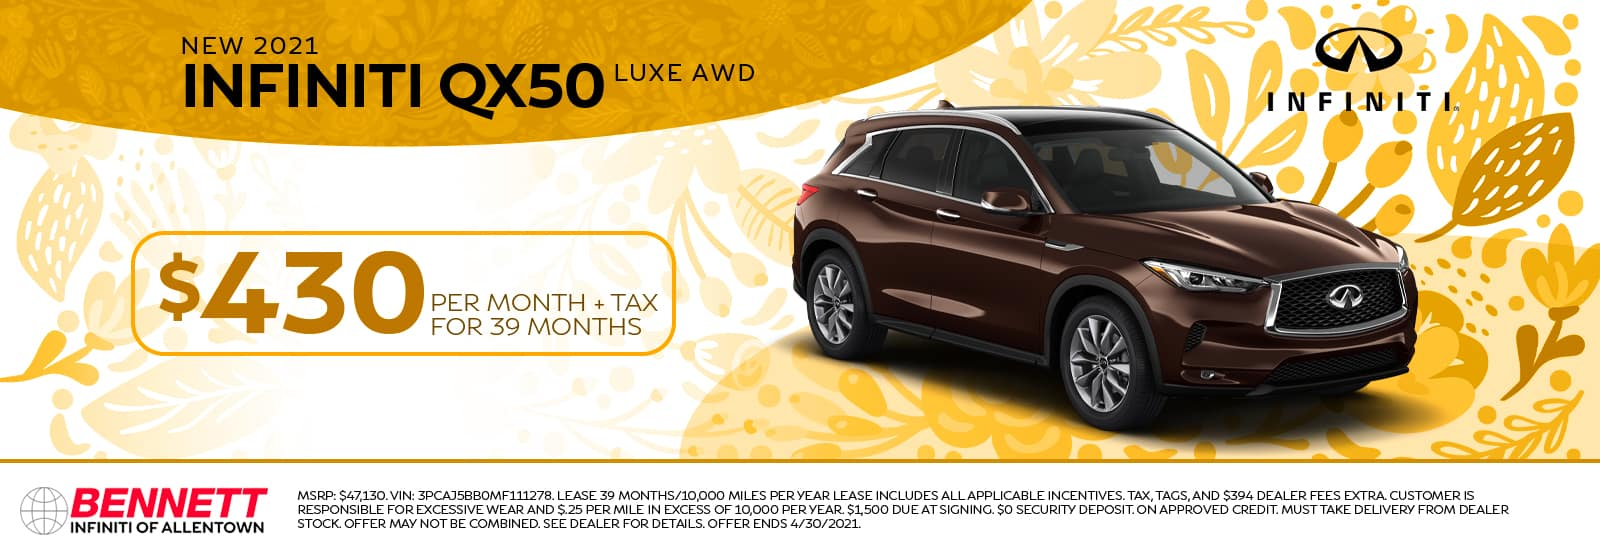 New 2021 INFINITI QX50 Luxe AWD - Lease $430 per month + tax for 39 months.